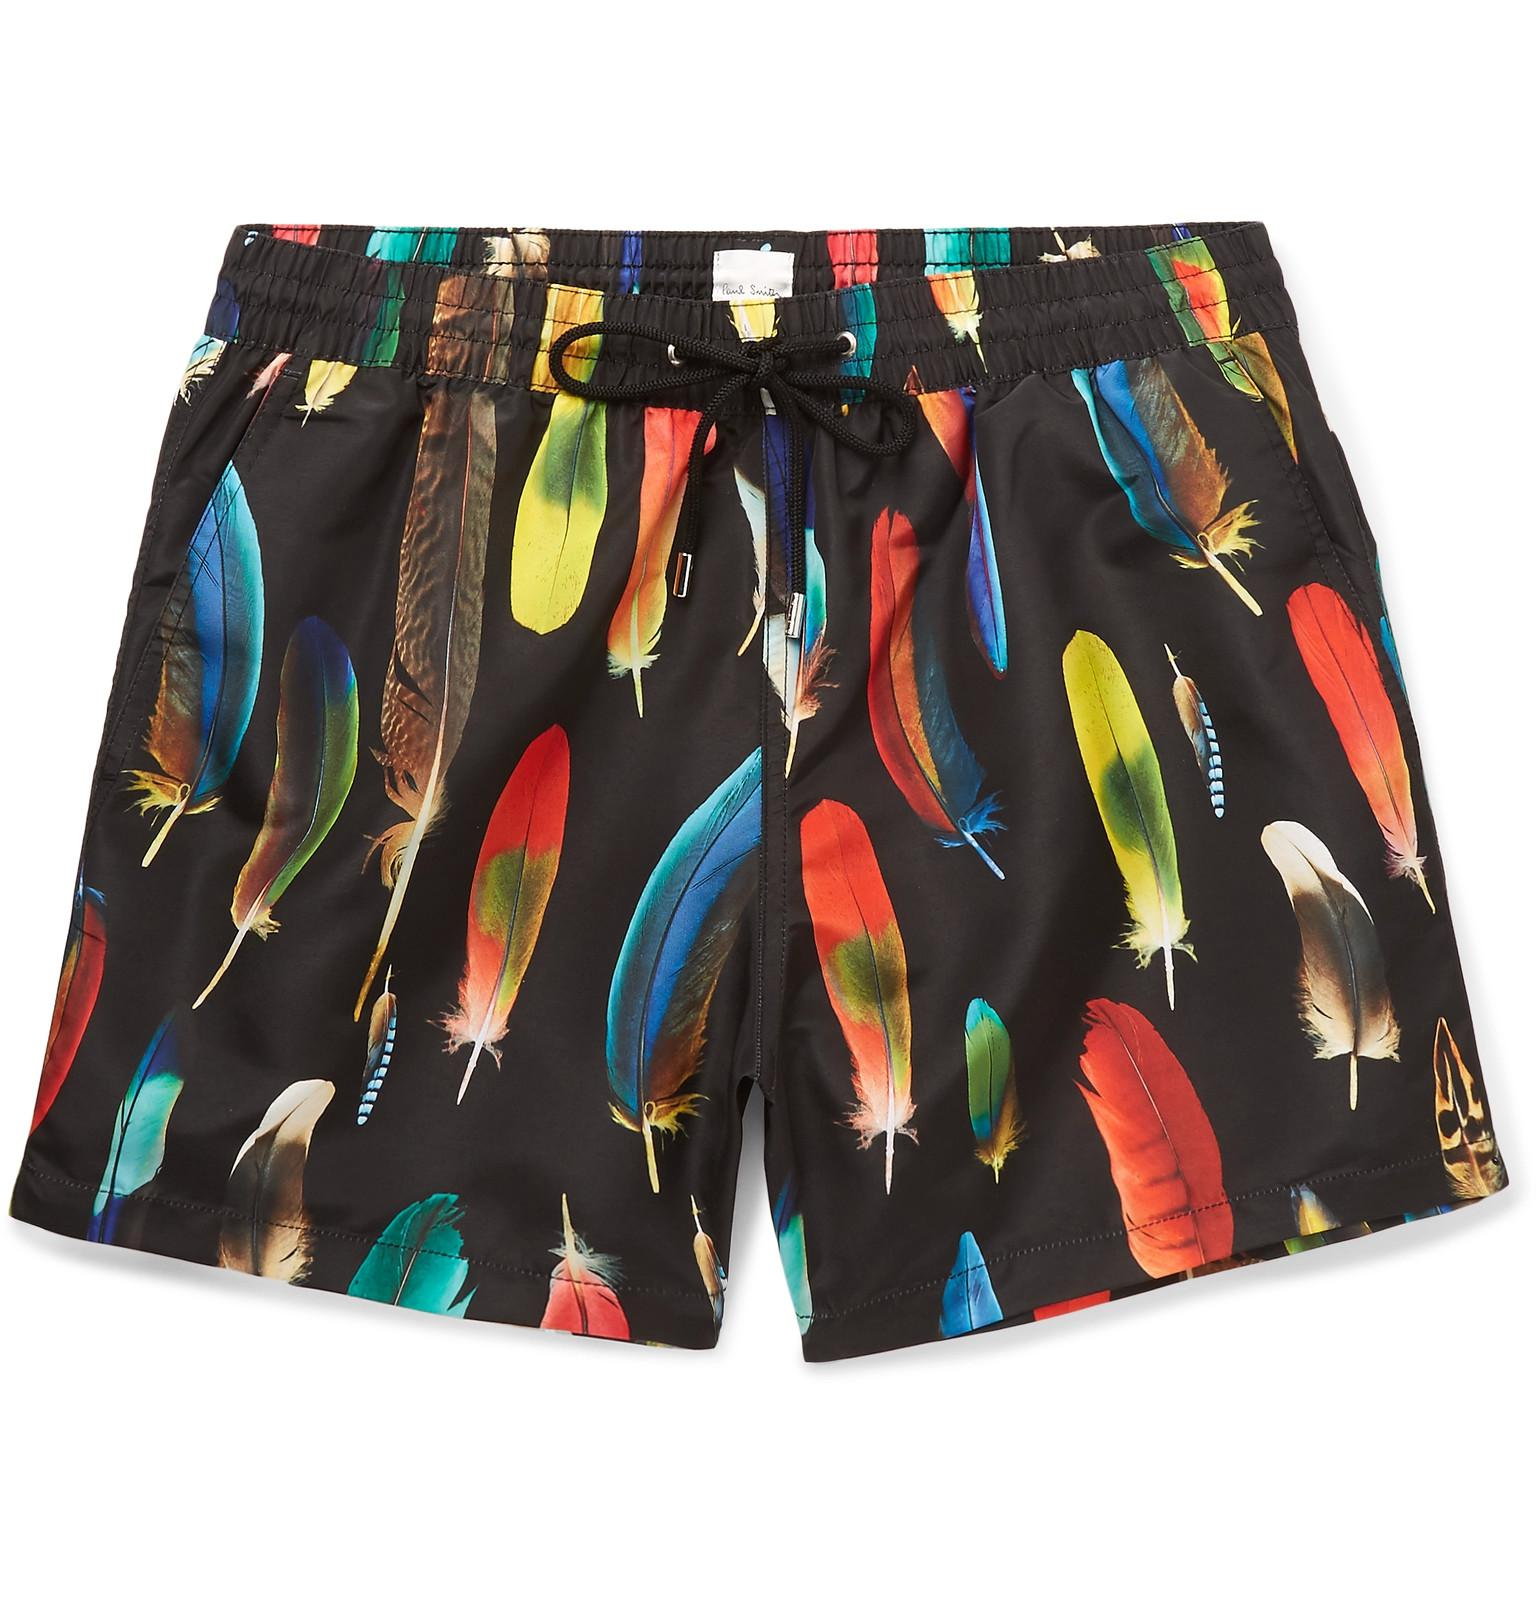 952f0dfb1f Paul Smith Mid-length Feather-print Swim Shorts in Black for Men - Lyst